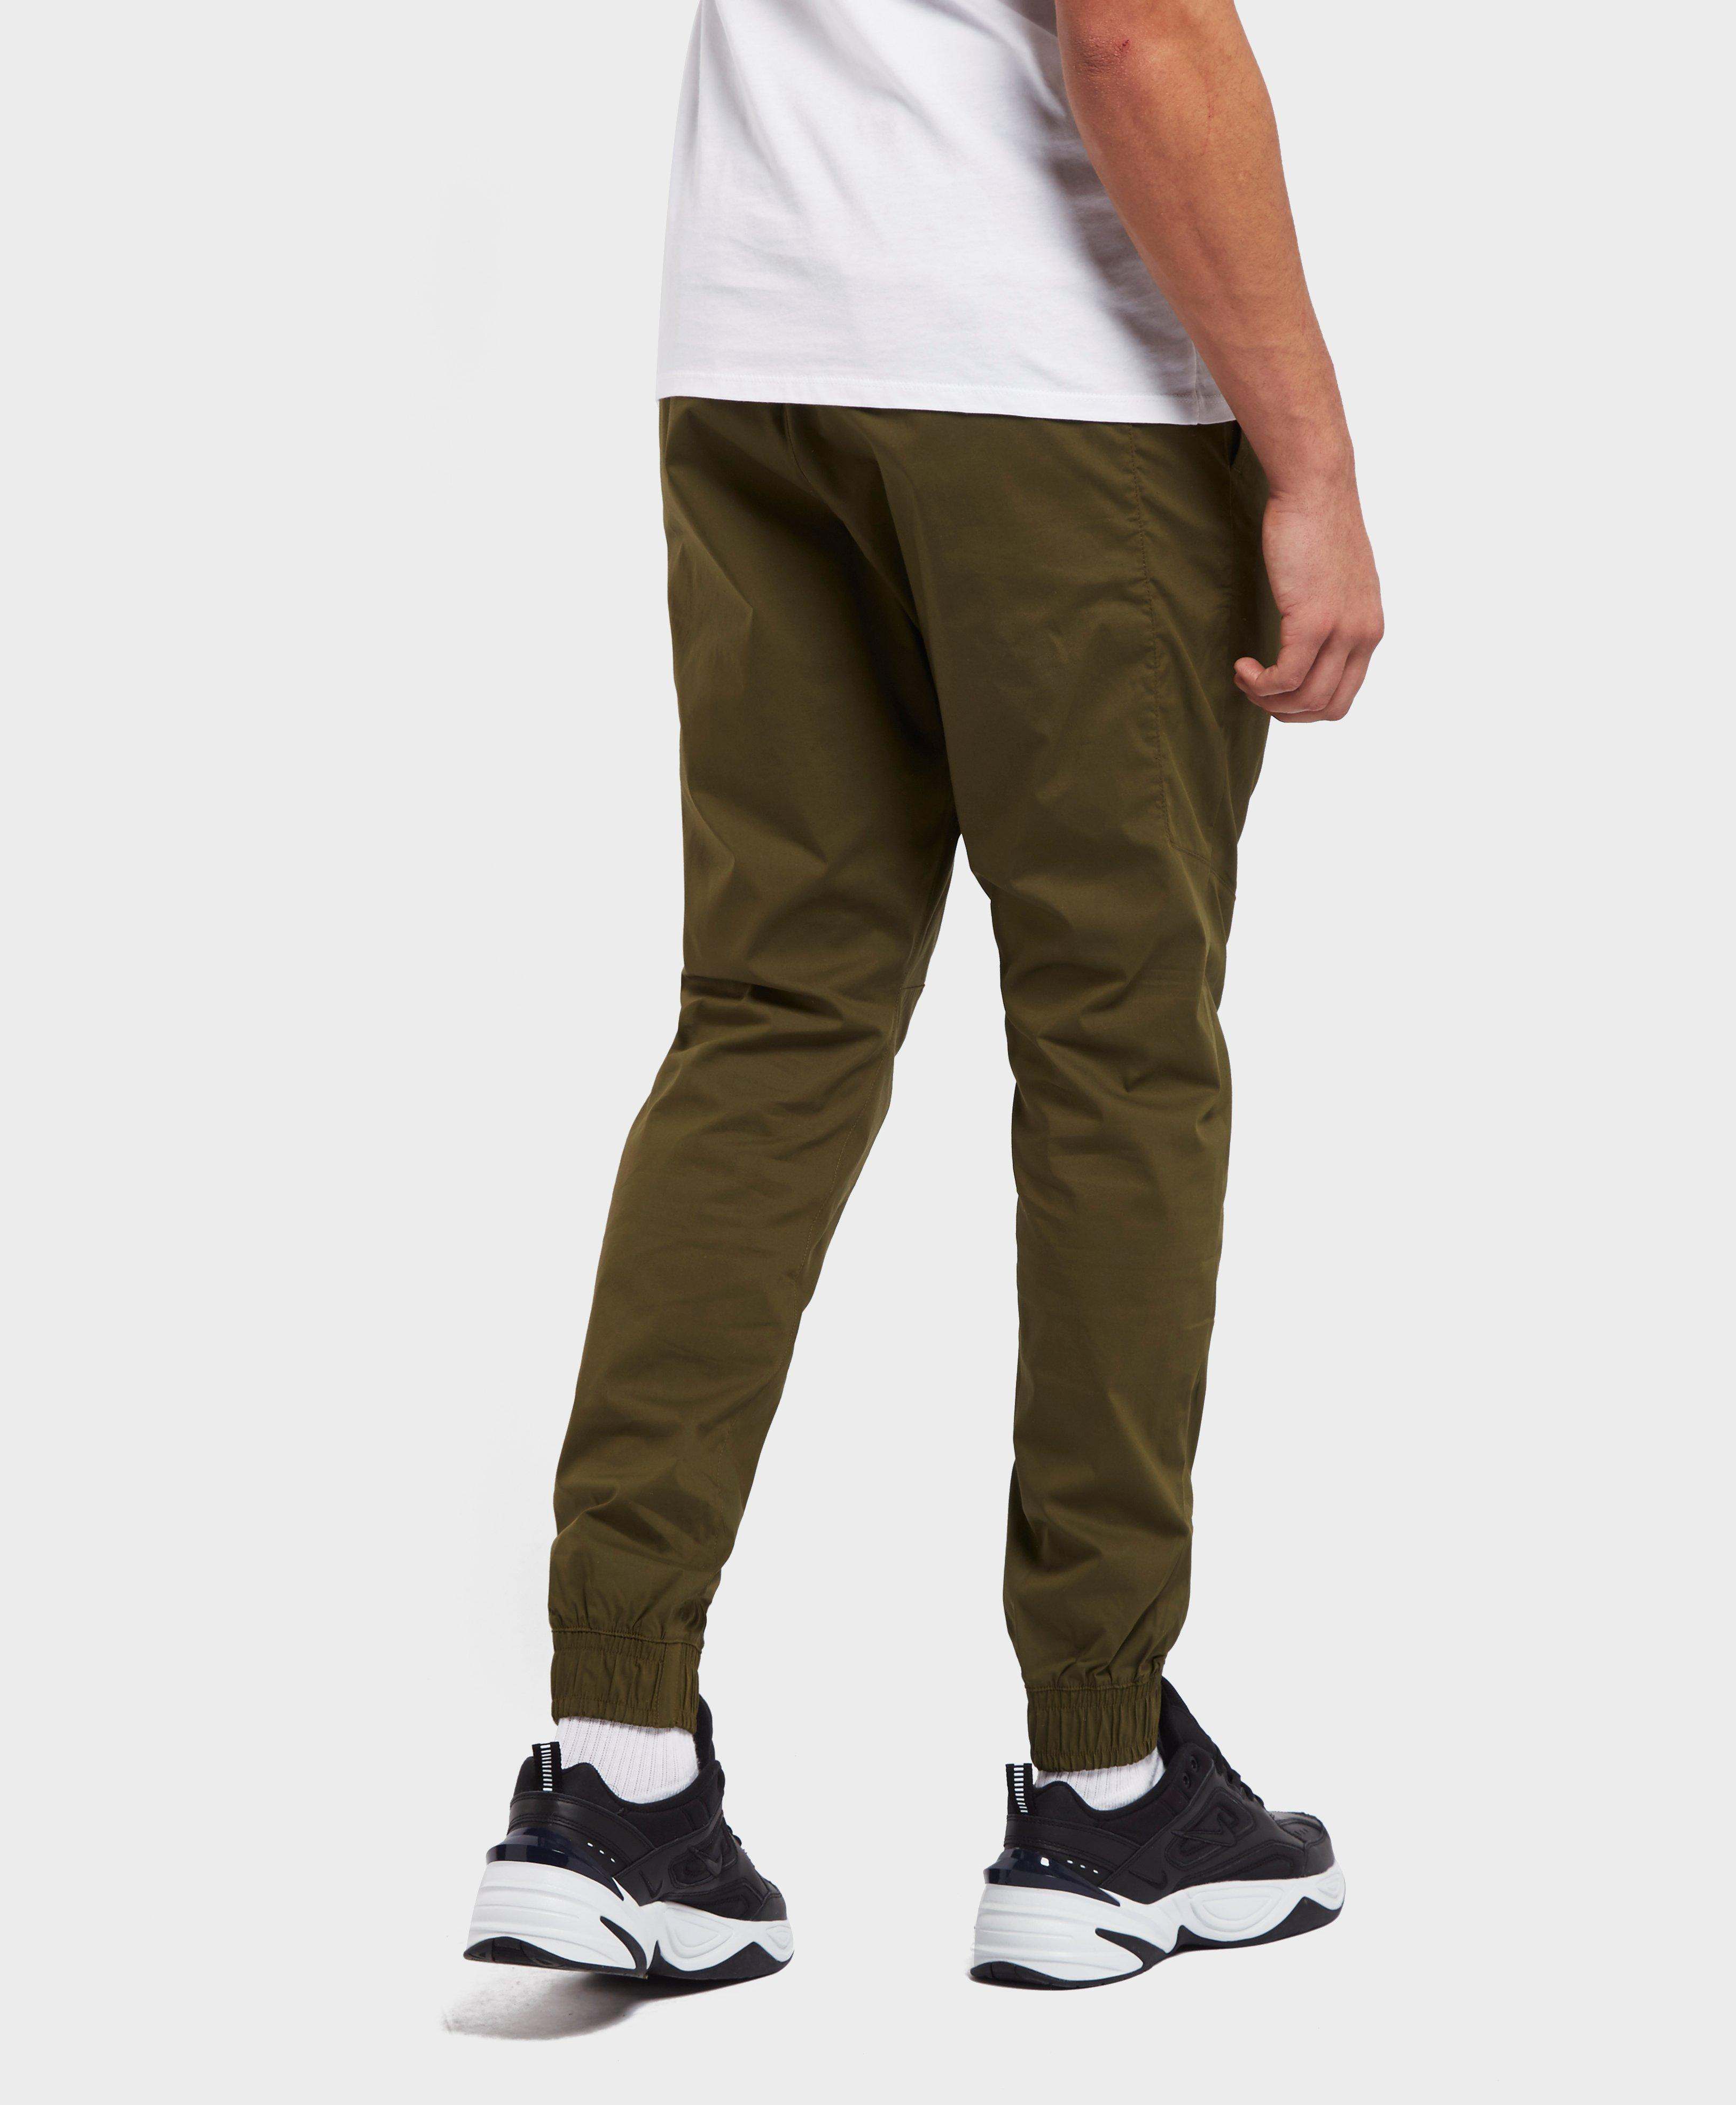 Lyst - Nike Twill Cuffed Track Pants in Green for Men 3277aebe4f46